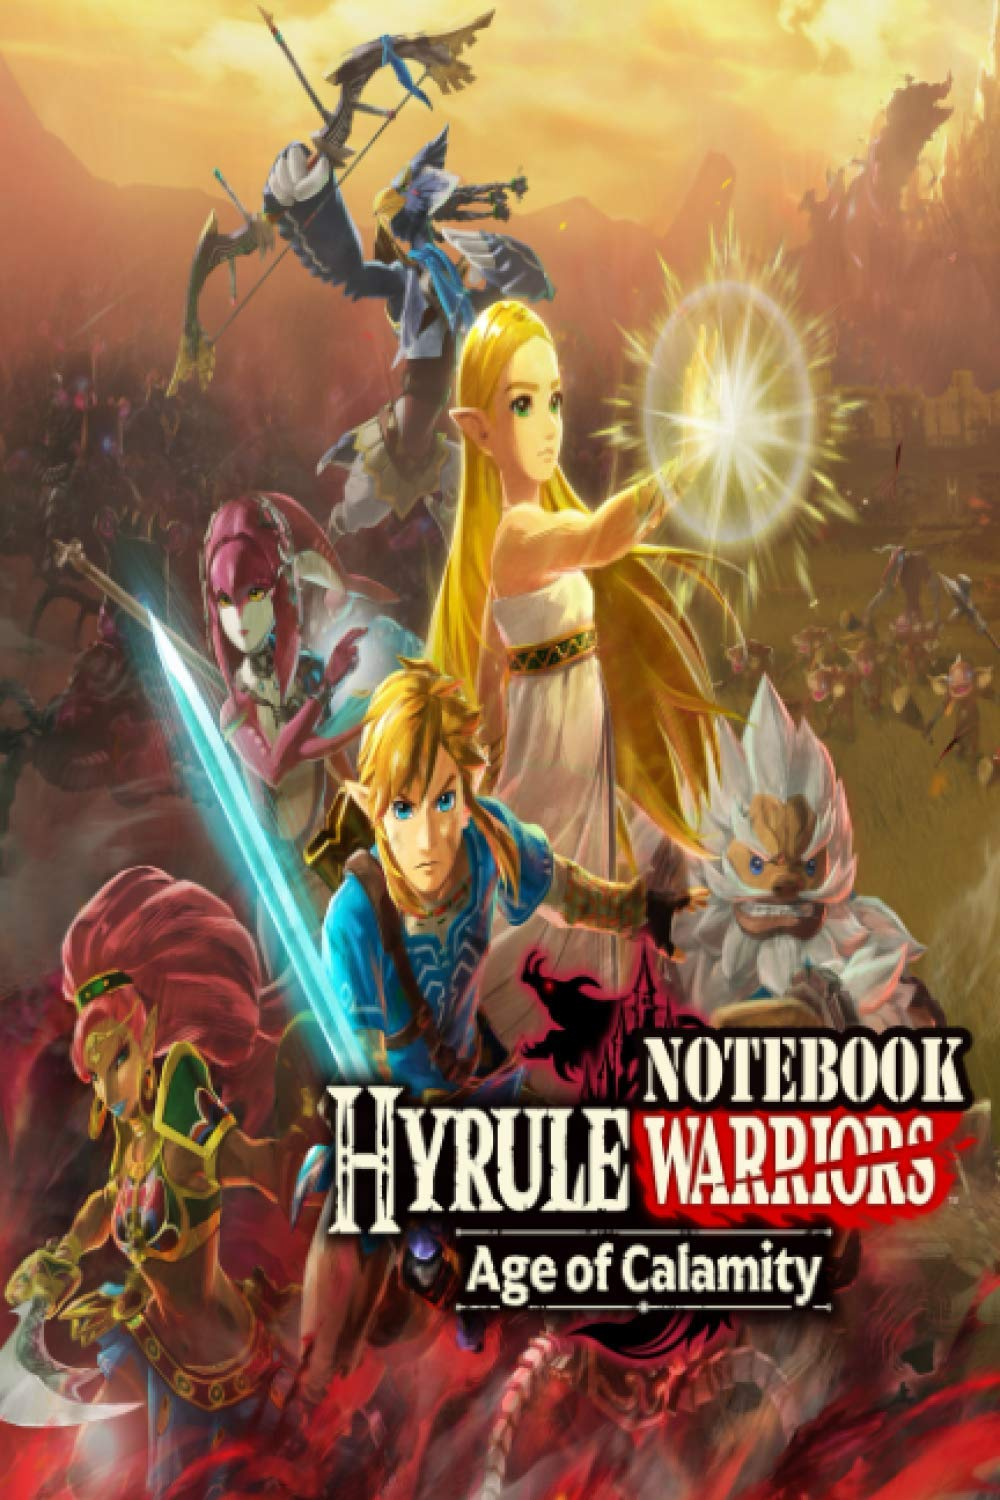 Amazon Com Hyrule Warriors Age Of Calamity Notebook Scorecard Scorecard For Scoring Your Games Hyrule Warriors Age Of Calamity 100 Softcover Pages For You Want To Write Result And Remember